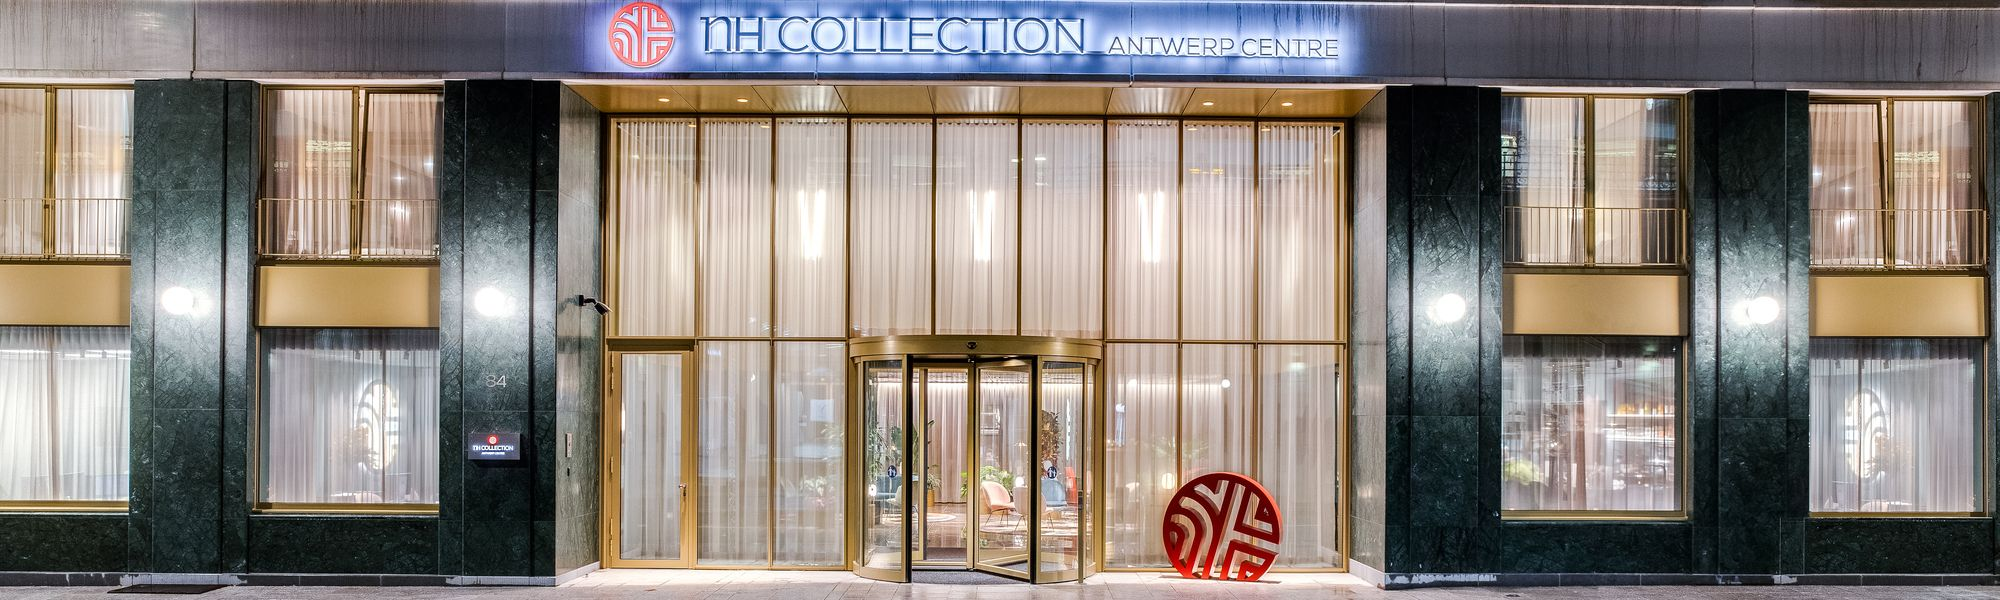 NH Collection Antwerp Centre